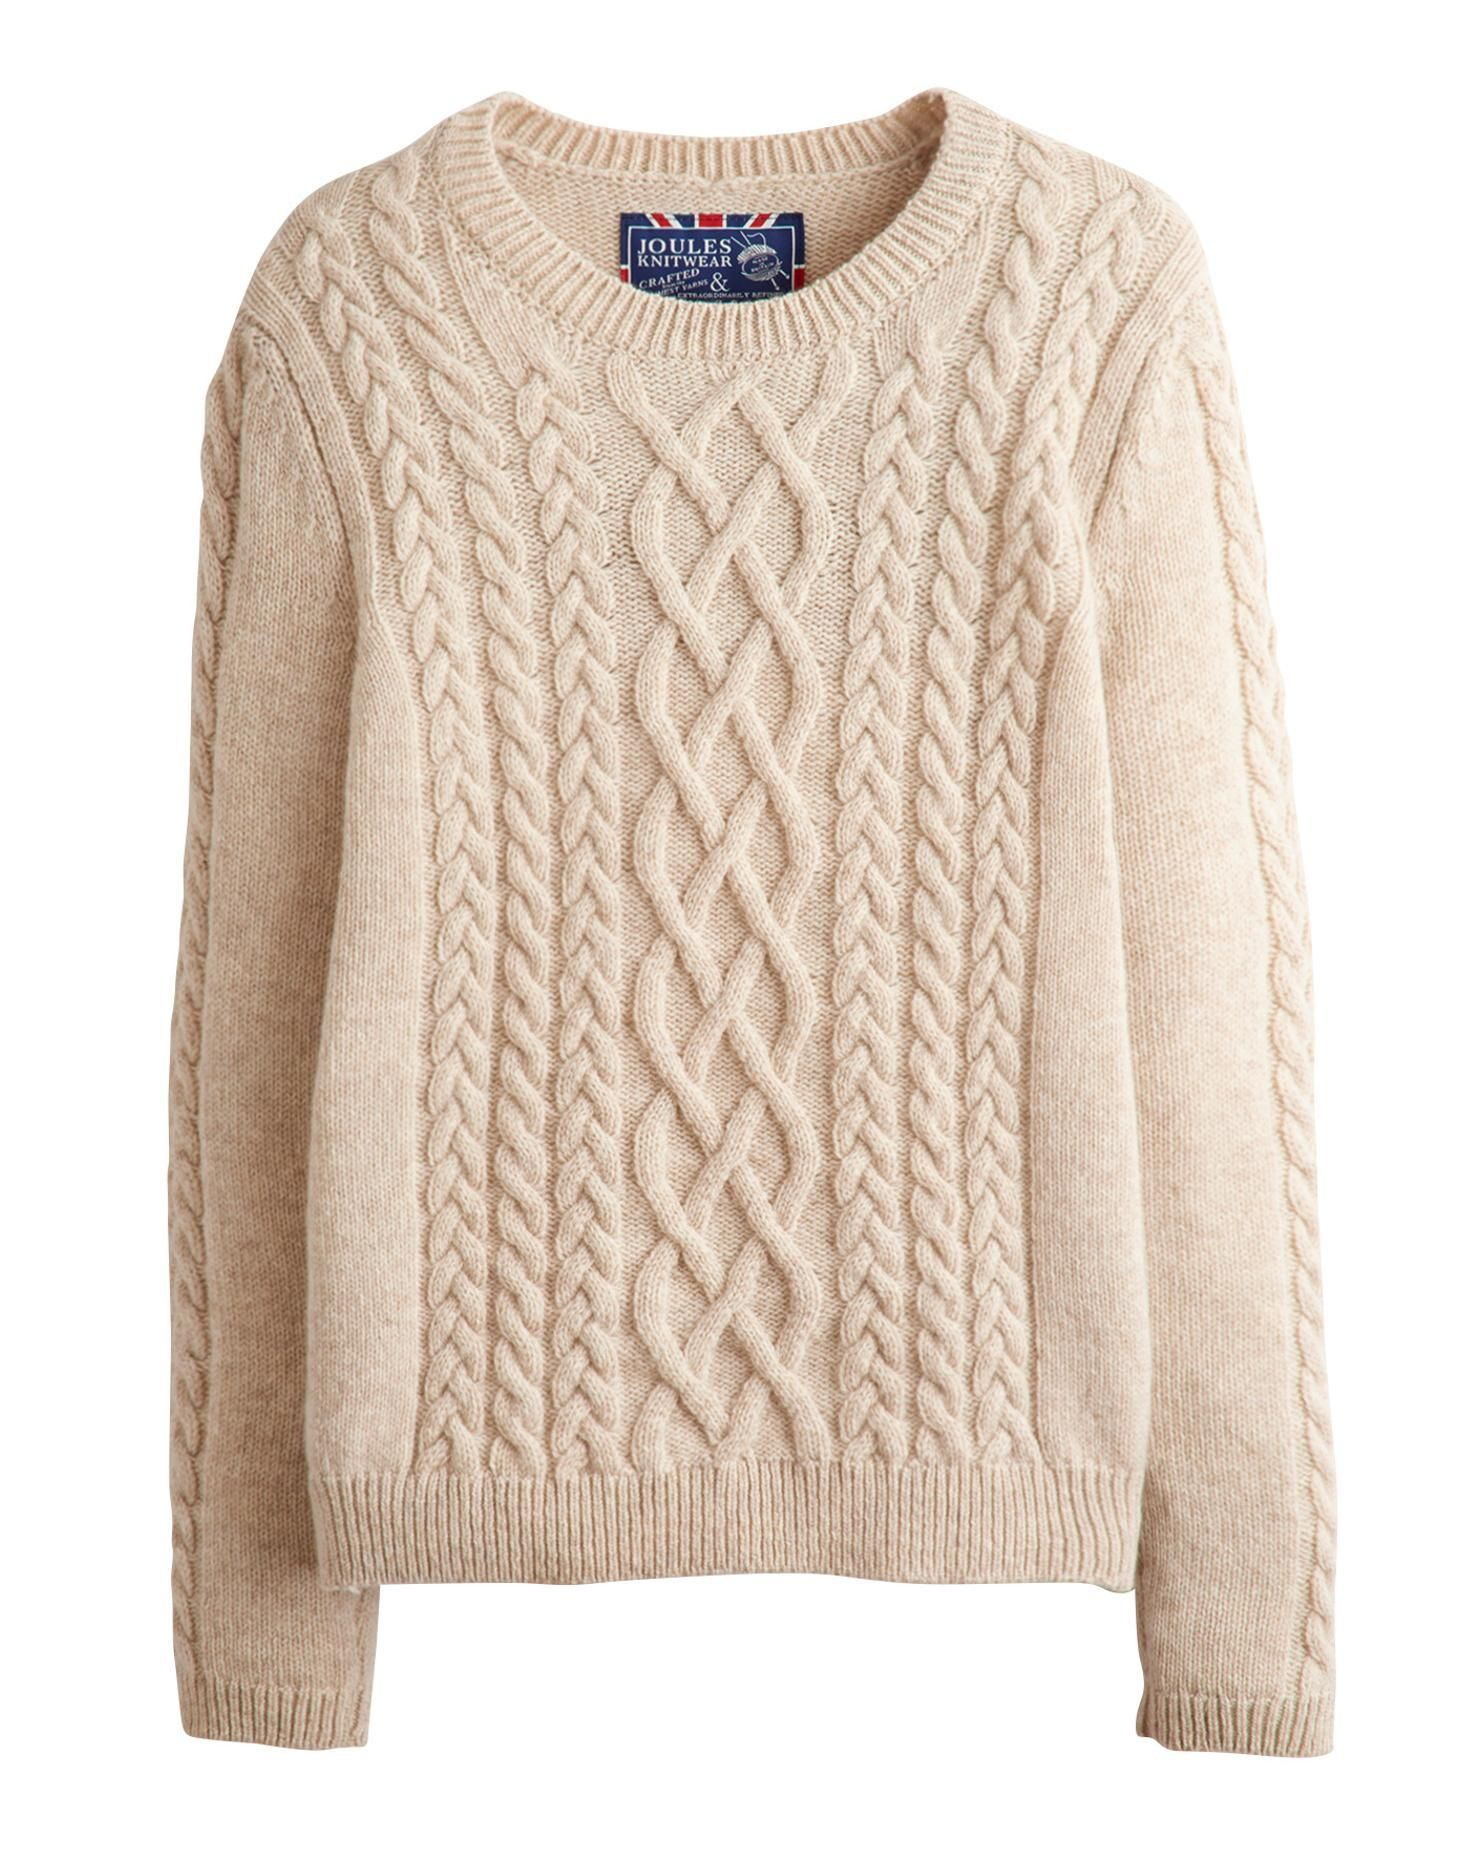 Joules Womens Crew Neck Cable Sweater, Oatmarl. Made in ...